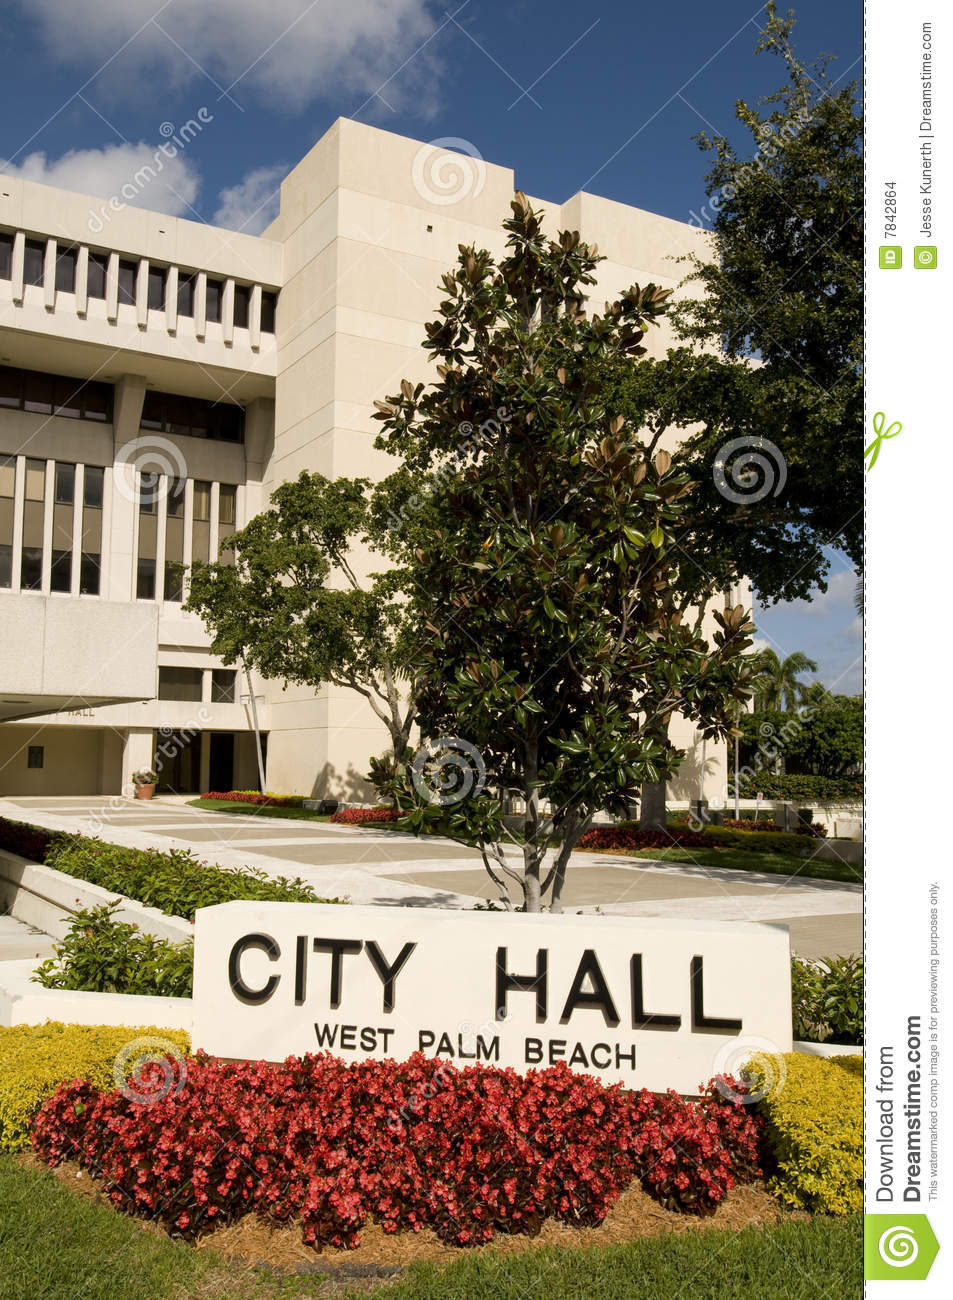 City Hall At West Palm Beach Florida Stock Photo - Image of bushes ...